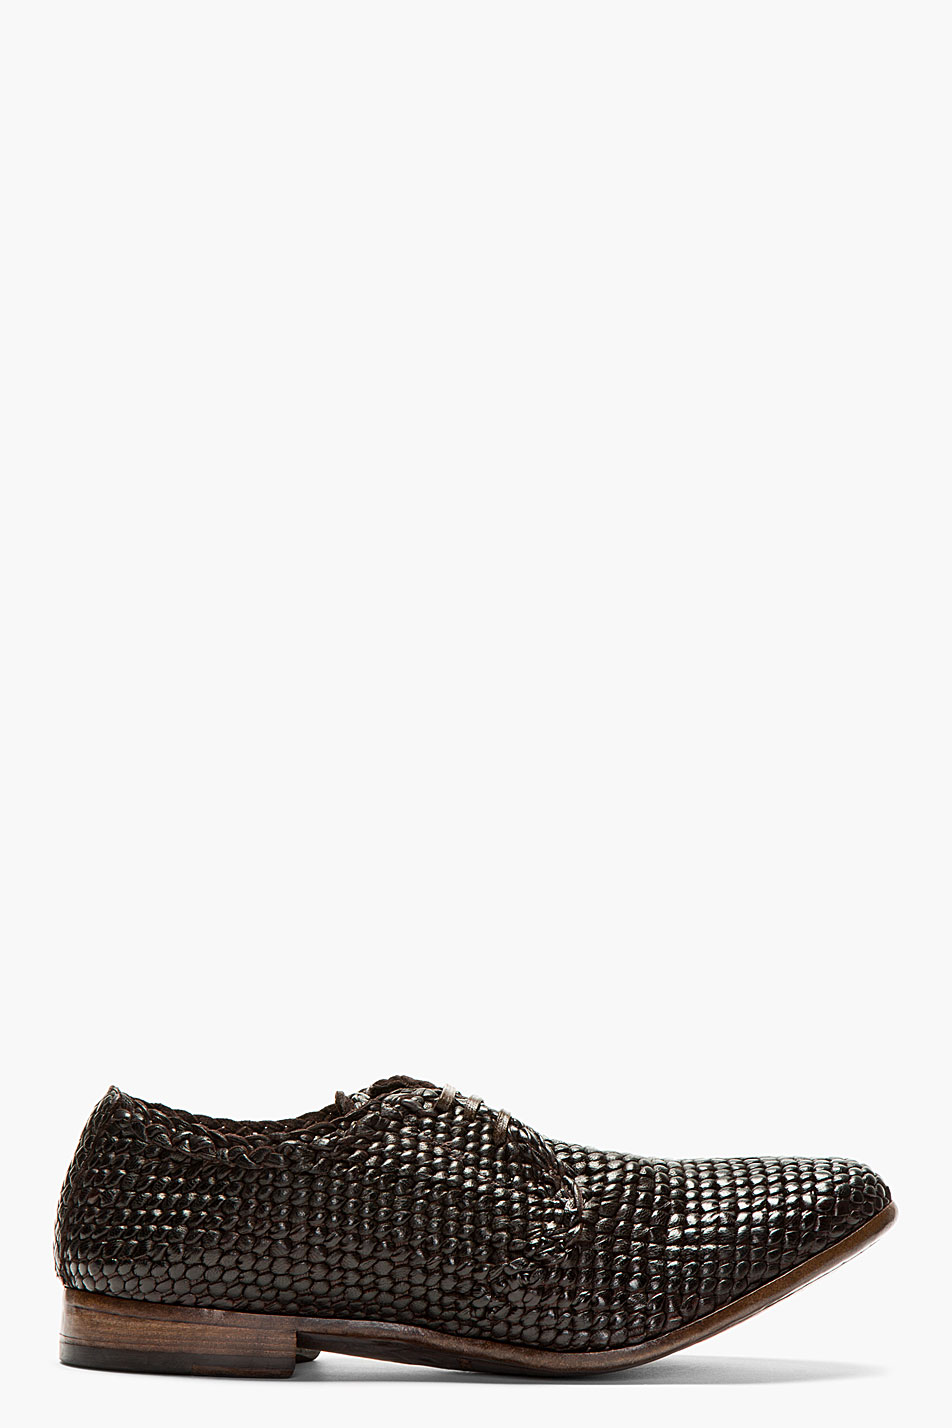 Dolce and gabbana brown woven leather derbys